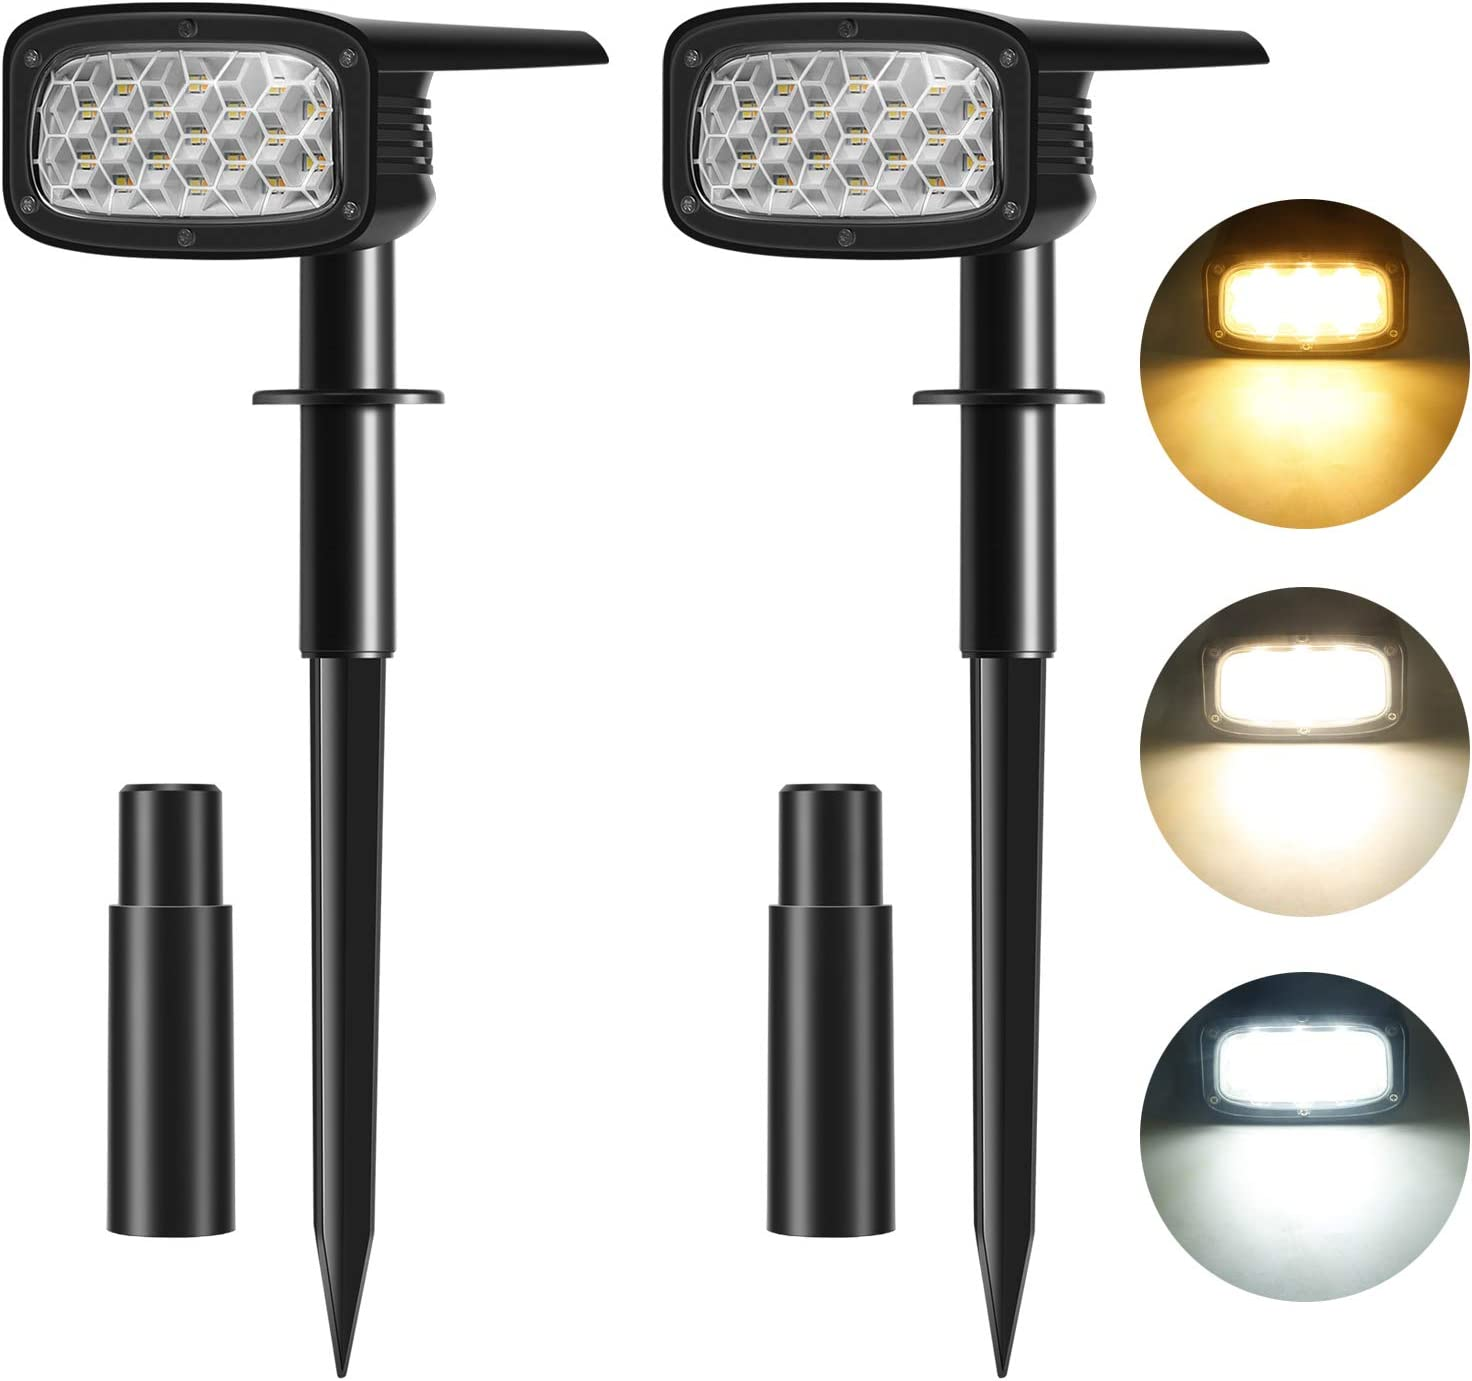 TOCLL 3 Color Solar Spotlights Outdoor, 34 LEDs Wireless Landscape Spotlights,3 Brightness Modes IP67 Waterproof Solar Powered Spot Lights (2-in-1) for Yard Path Patio Porch Walkway Garden -2 Pack